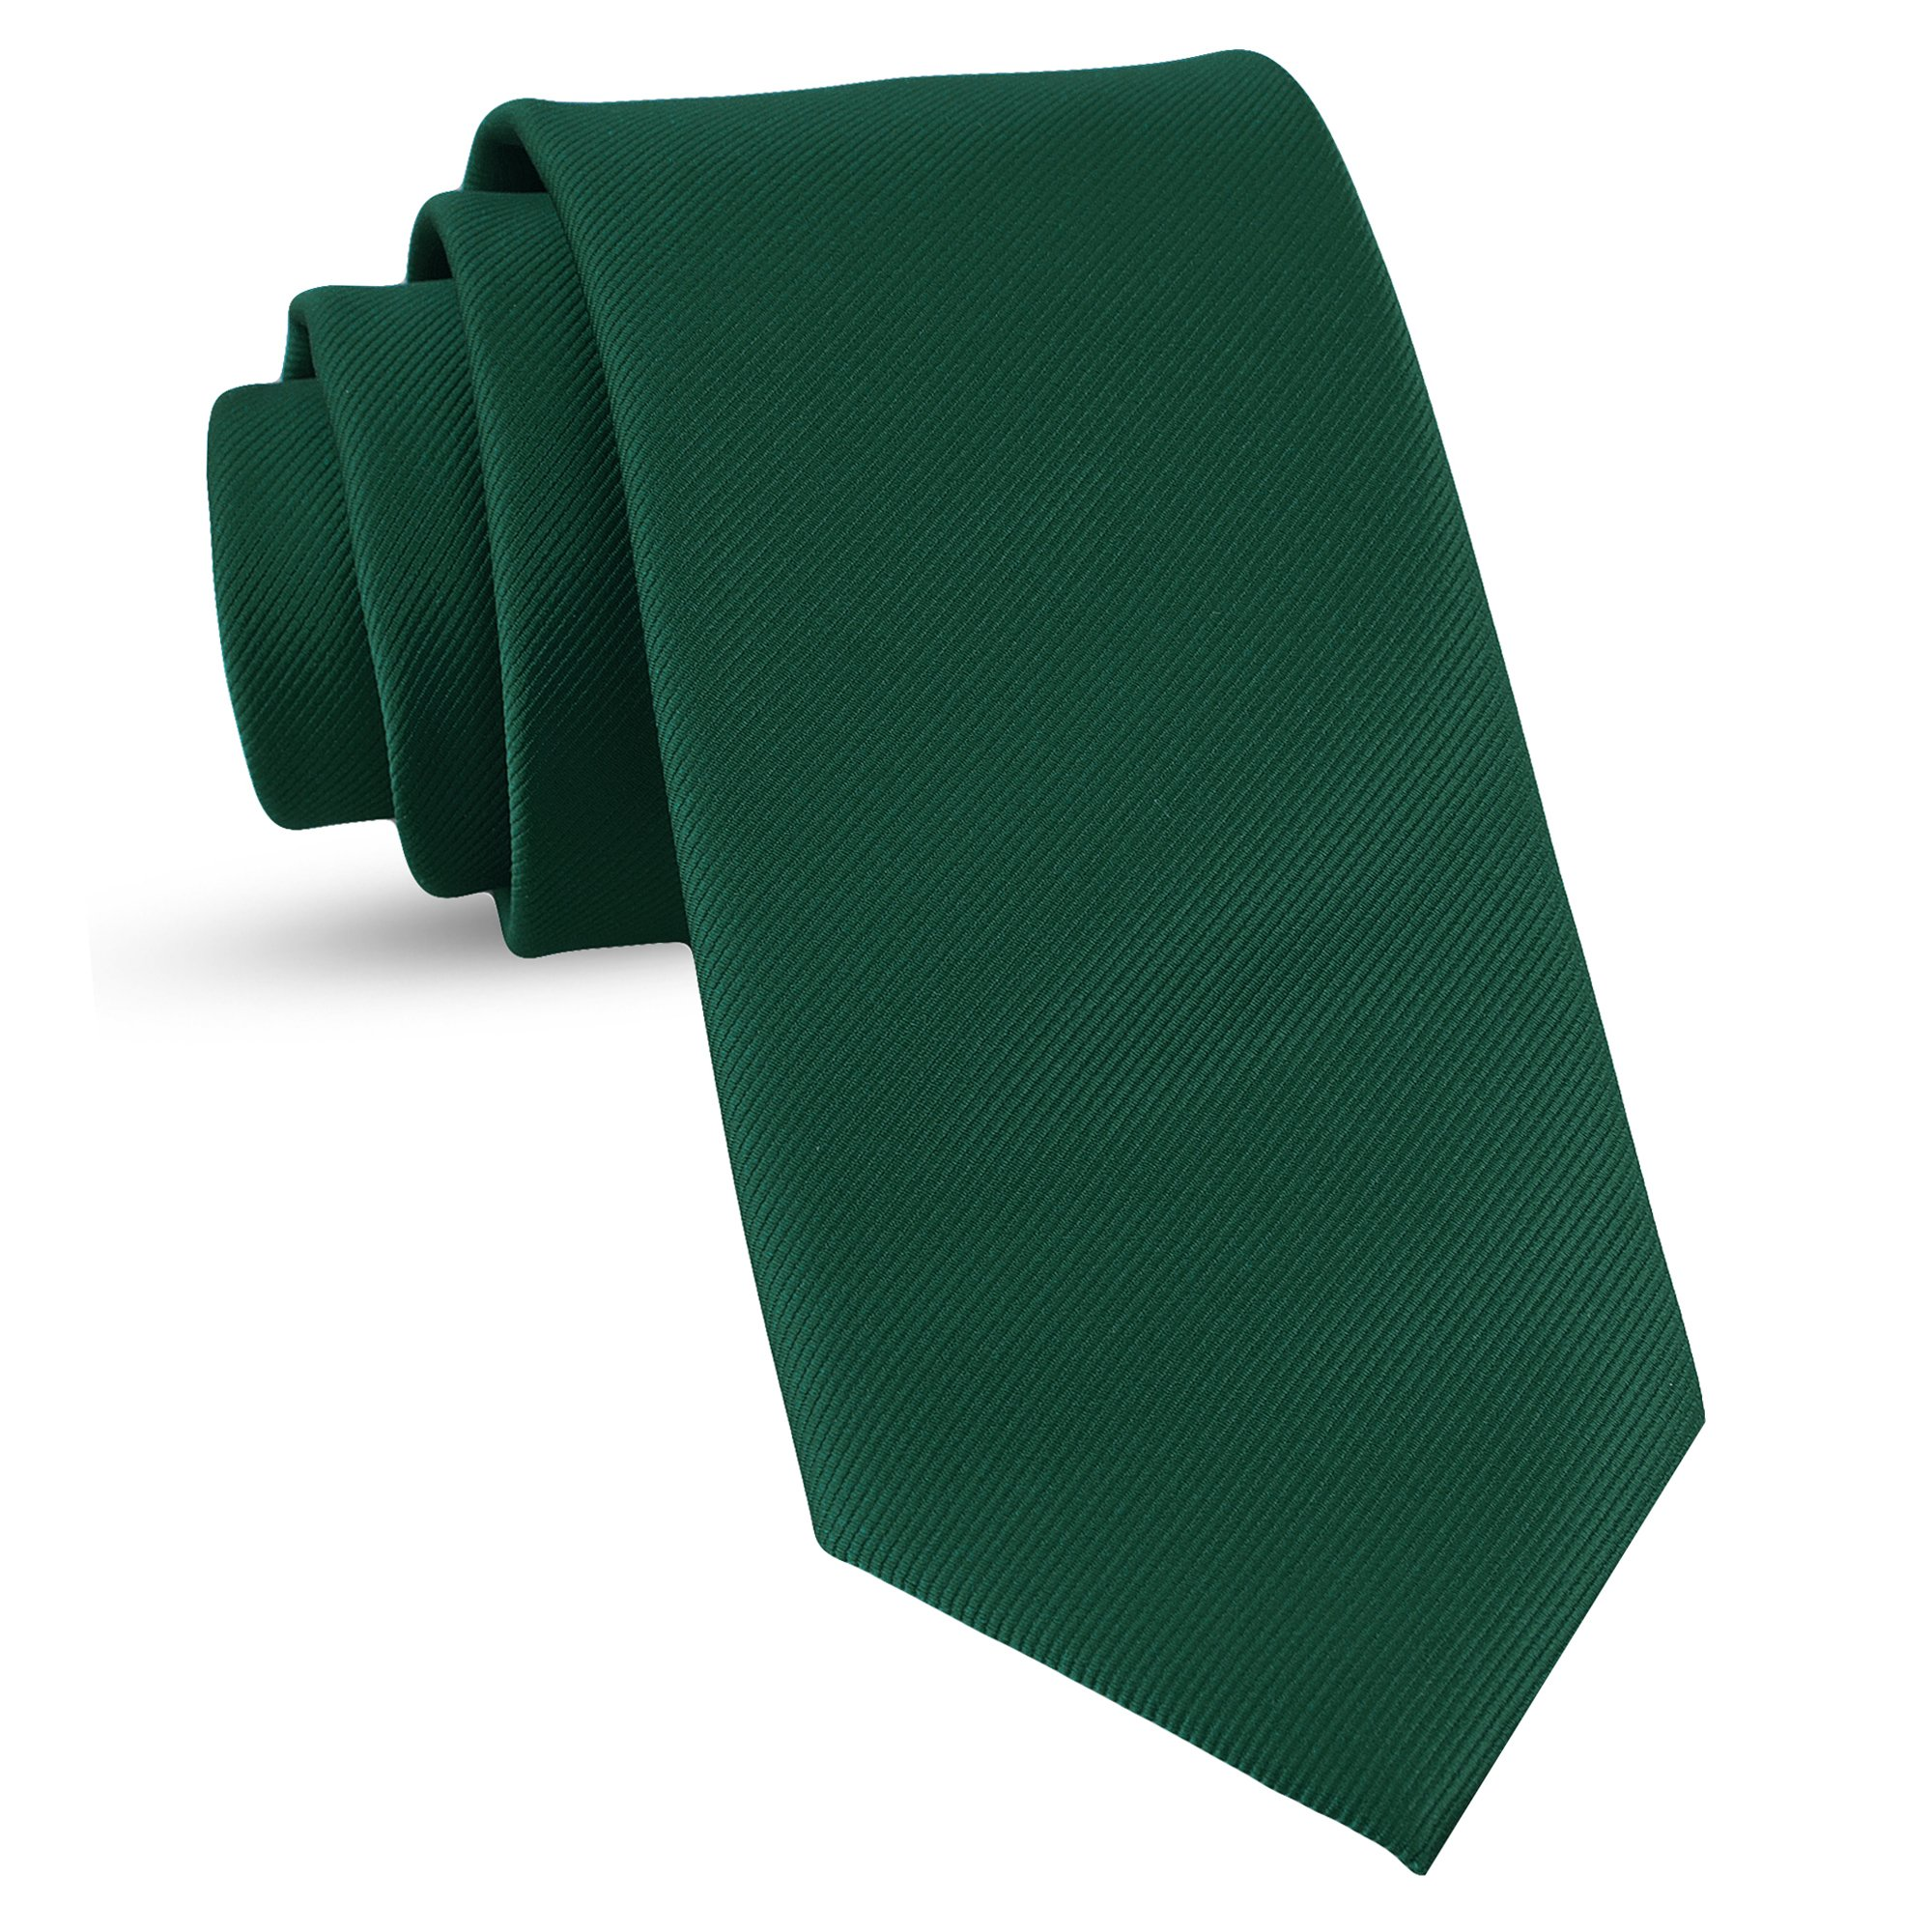 Handmade Emerald Green Ties For Men Skinny Woven Slim Tie Mens Ties : Thin Necktie, Solid Color Neckties 3''